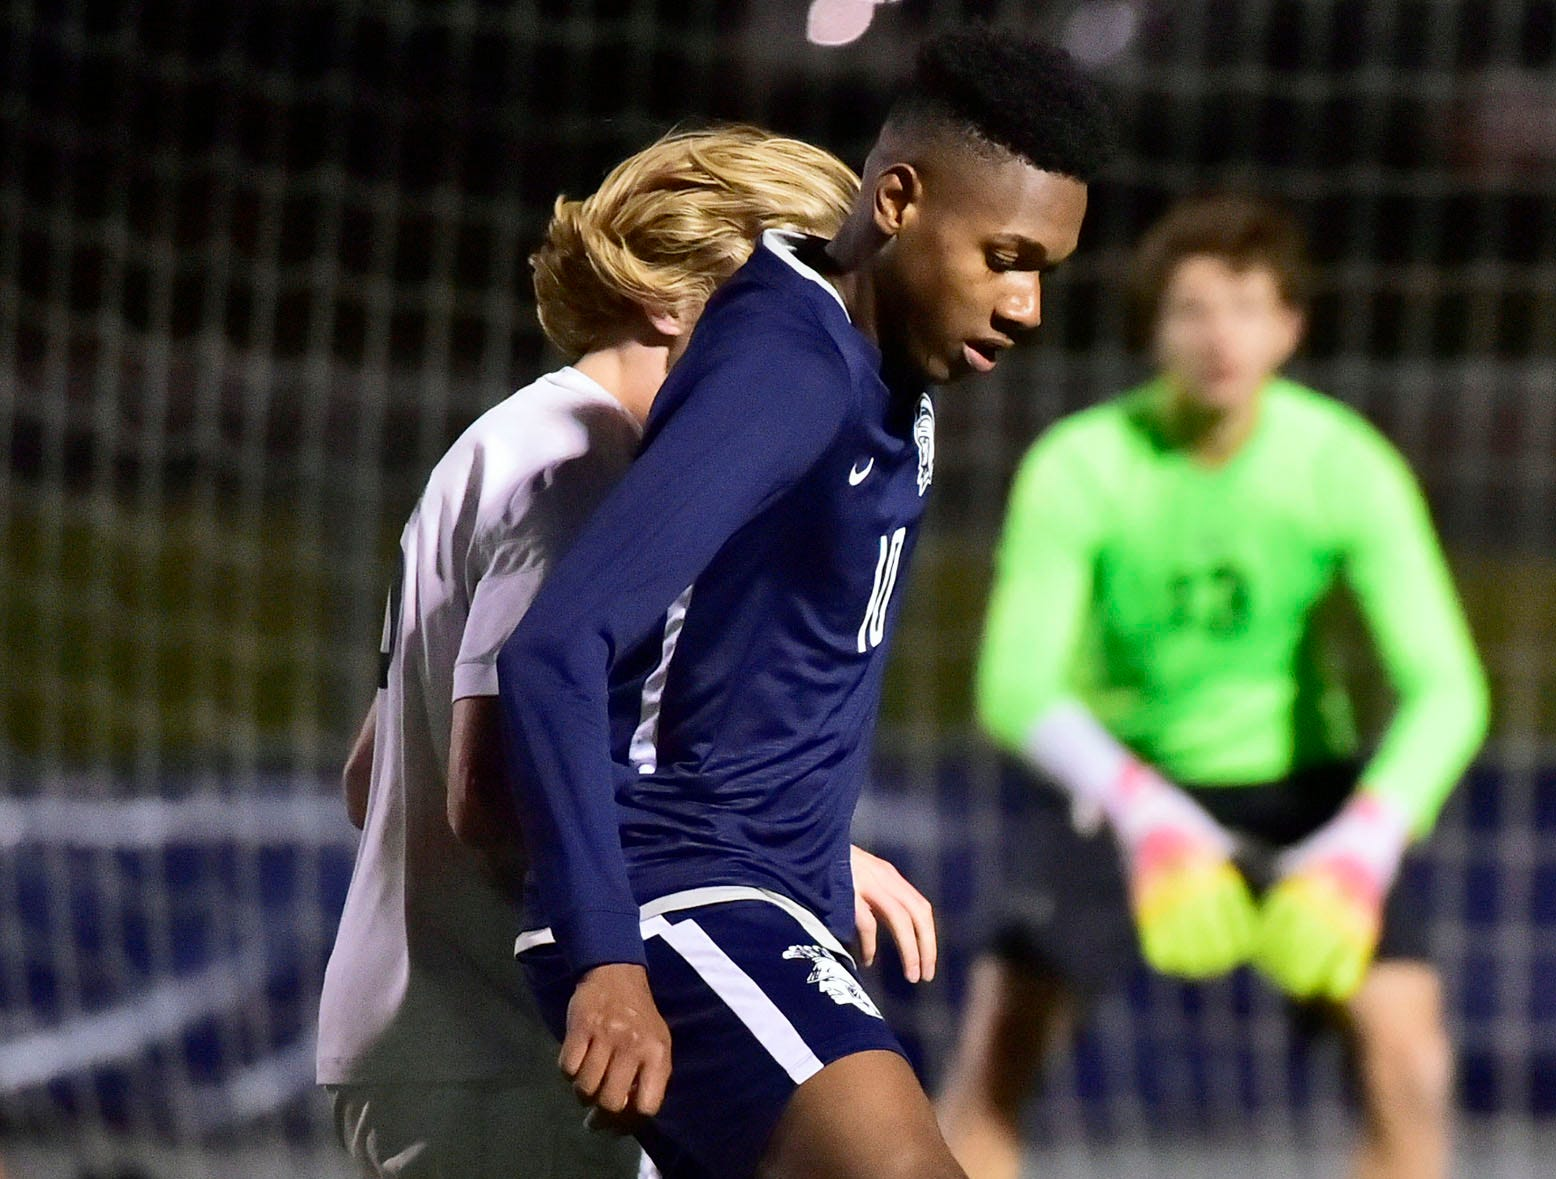 Omario Duncan (10) of Chambersburg moves the ball for the Trojans. Chambersburg lost a first round D3 soccer match to Dallastown 2-1 on Tuesday, Oct. 23, 2018.